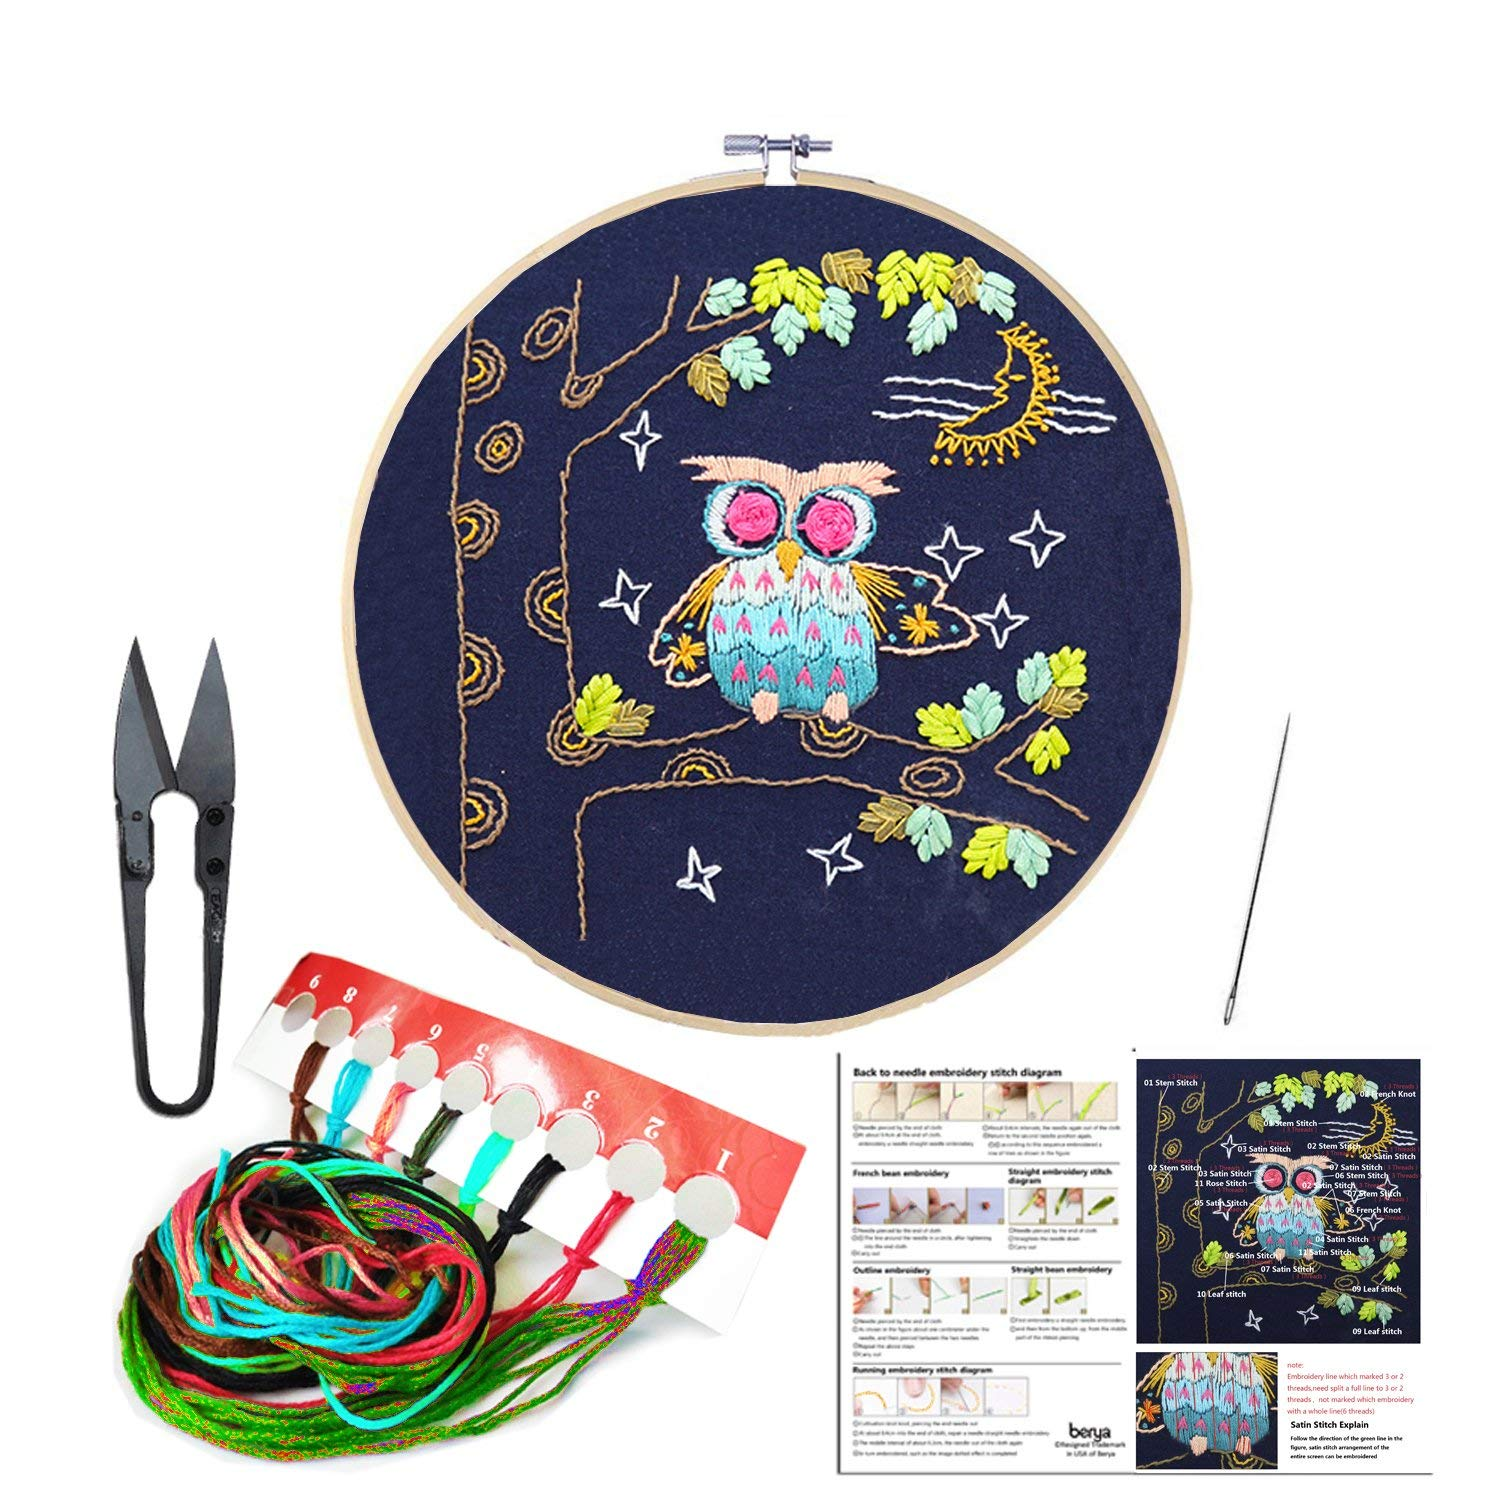 Full Set of Handmade Embroidery Starter Kit with Cute Animal Pattern Including Embroidery Cloth,Bamboo Embroidery Hoop, Color Threads, and Tools Kit for Beginners (Owl)